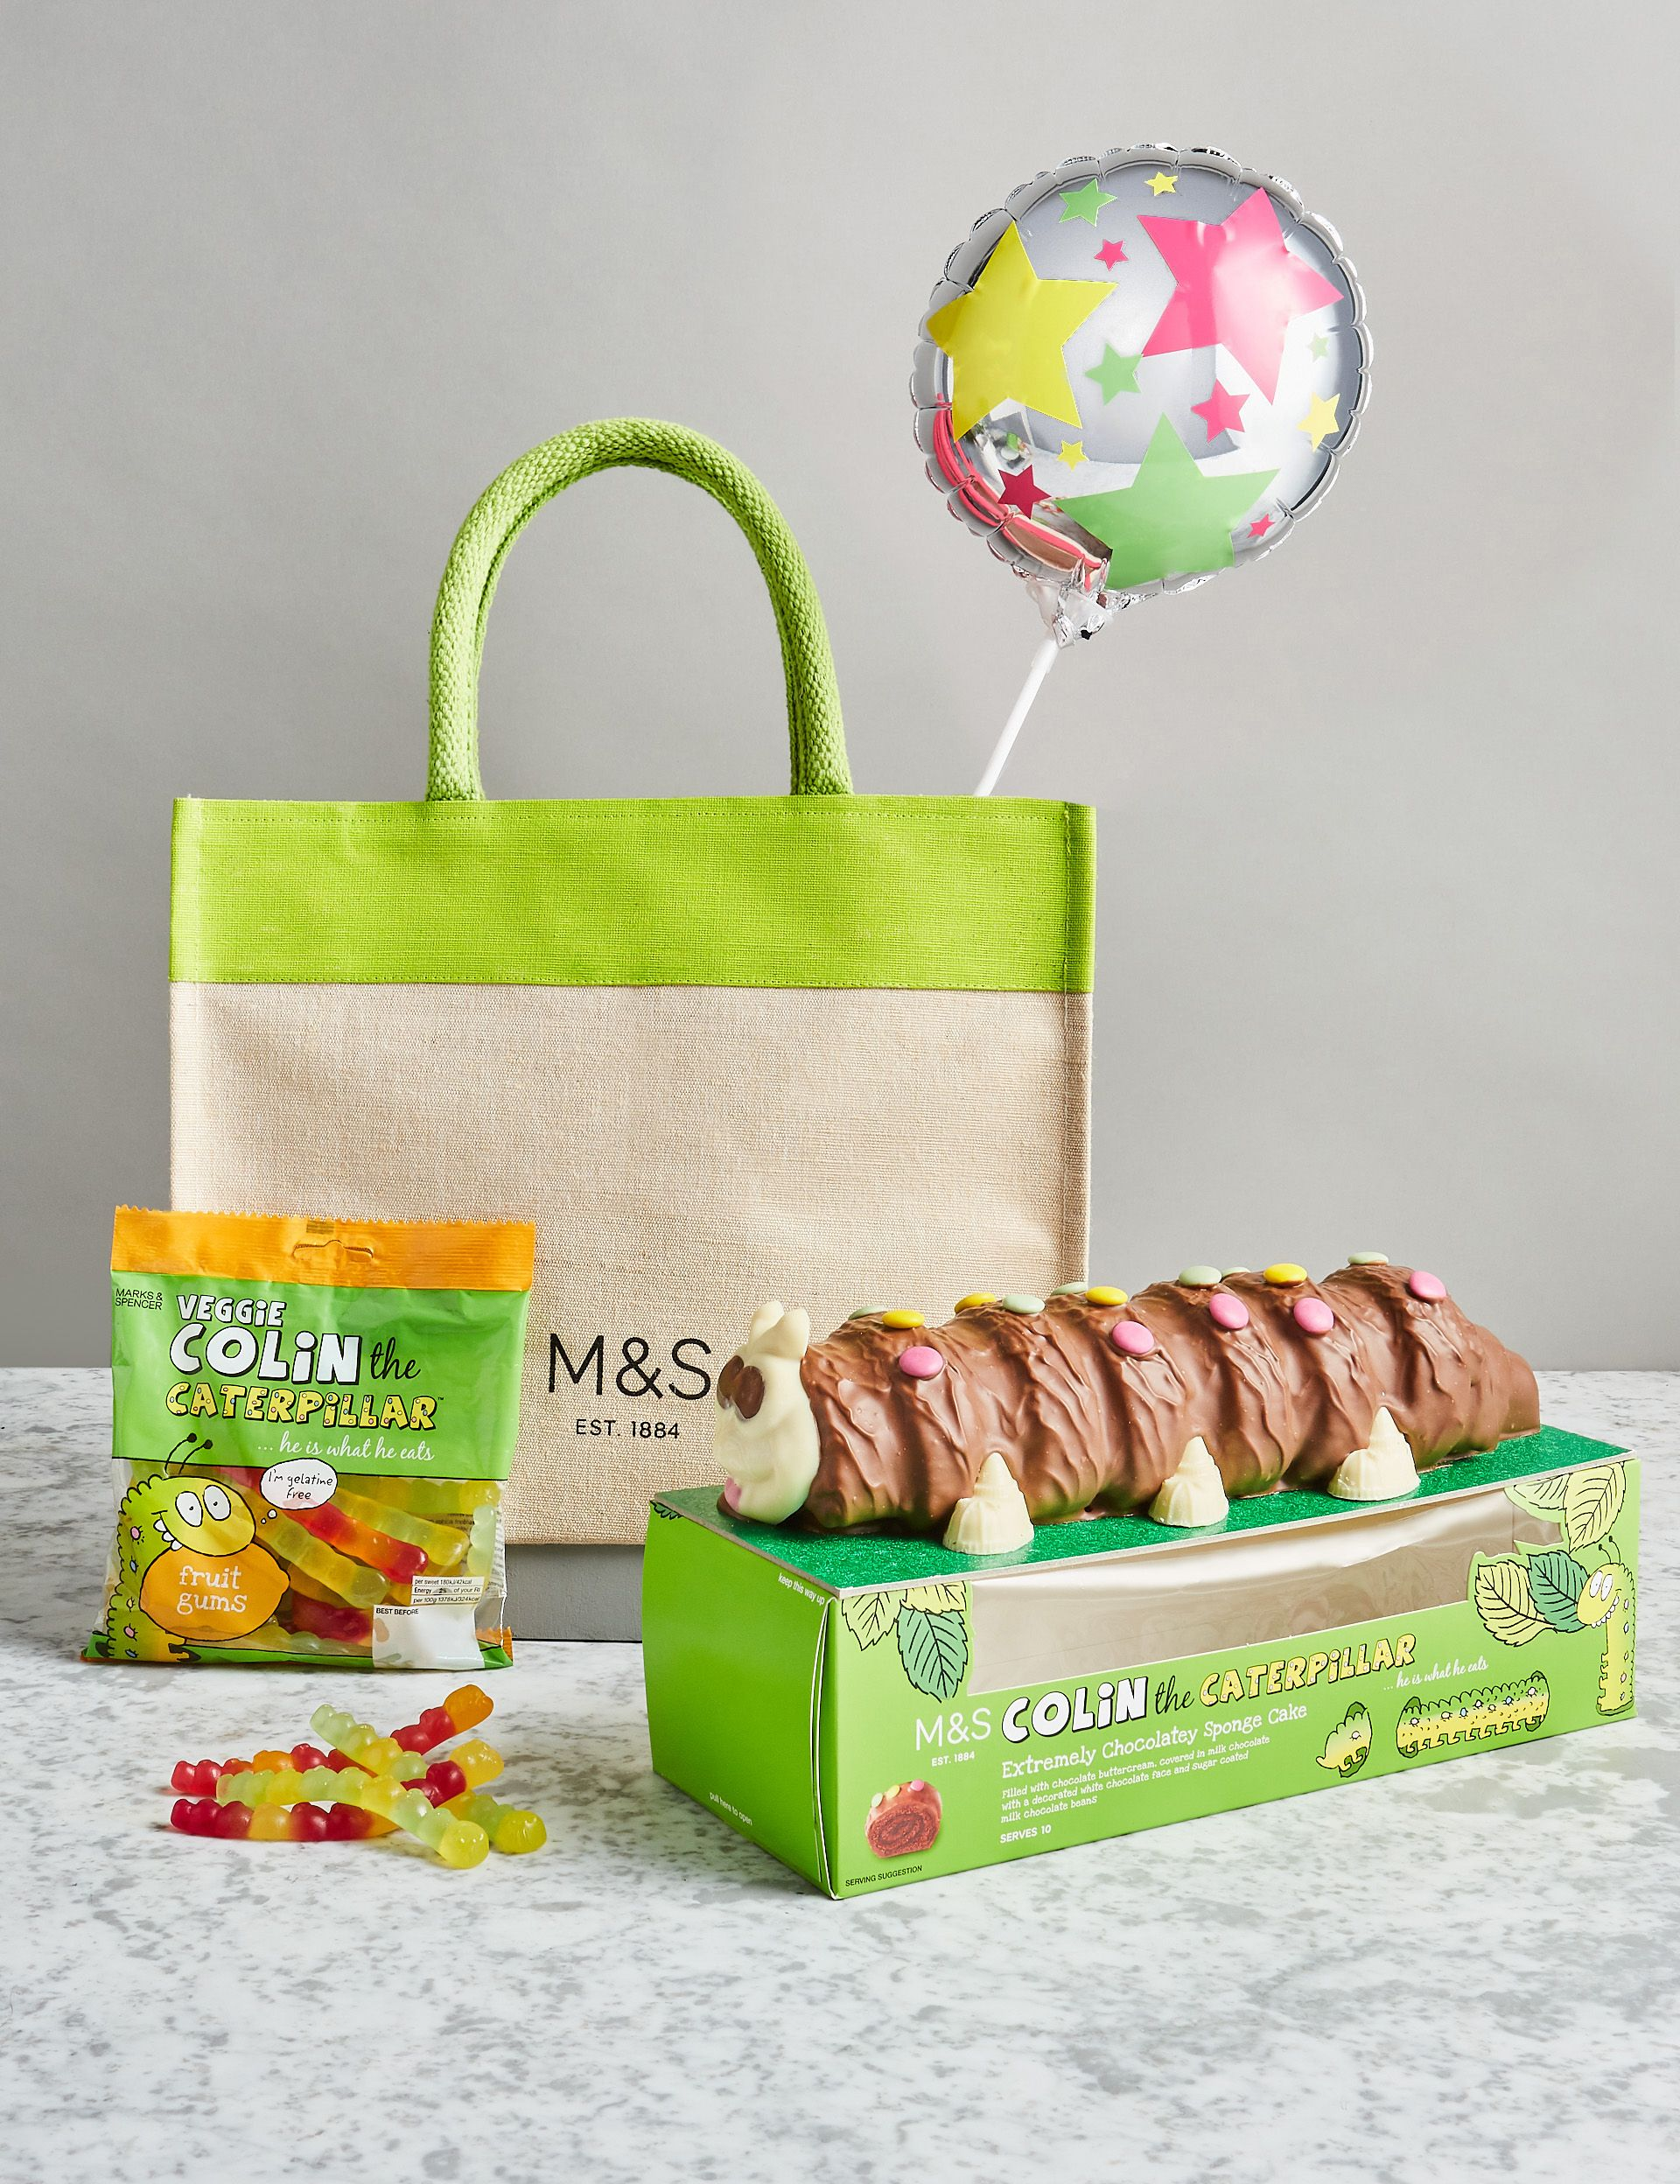 Fine Mss Celebration Cake Delivery Service Includes Colin The Personalised Birthday Cards Sponlily Jamesorg